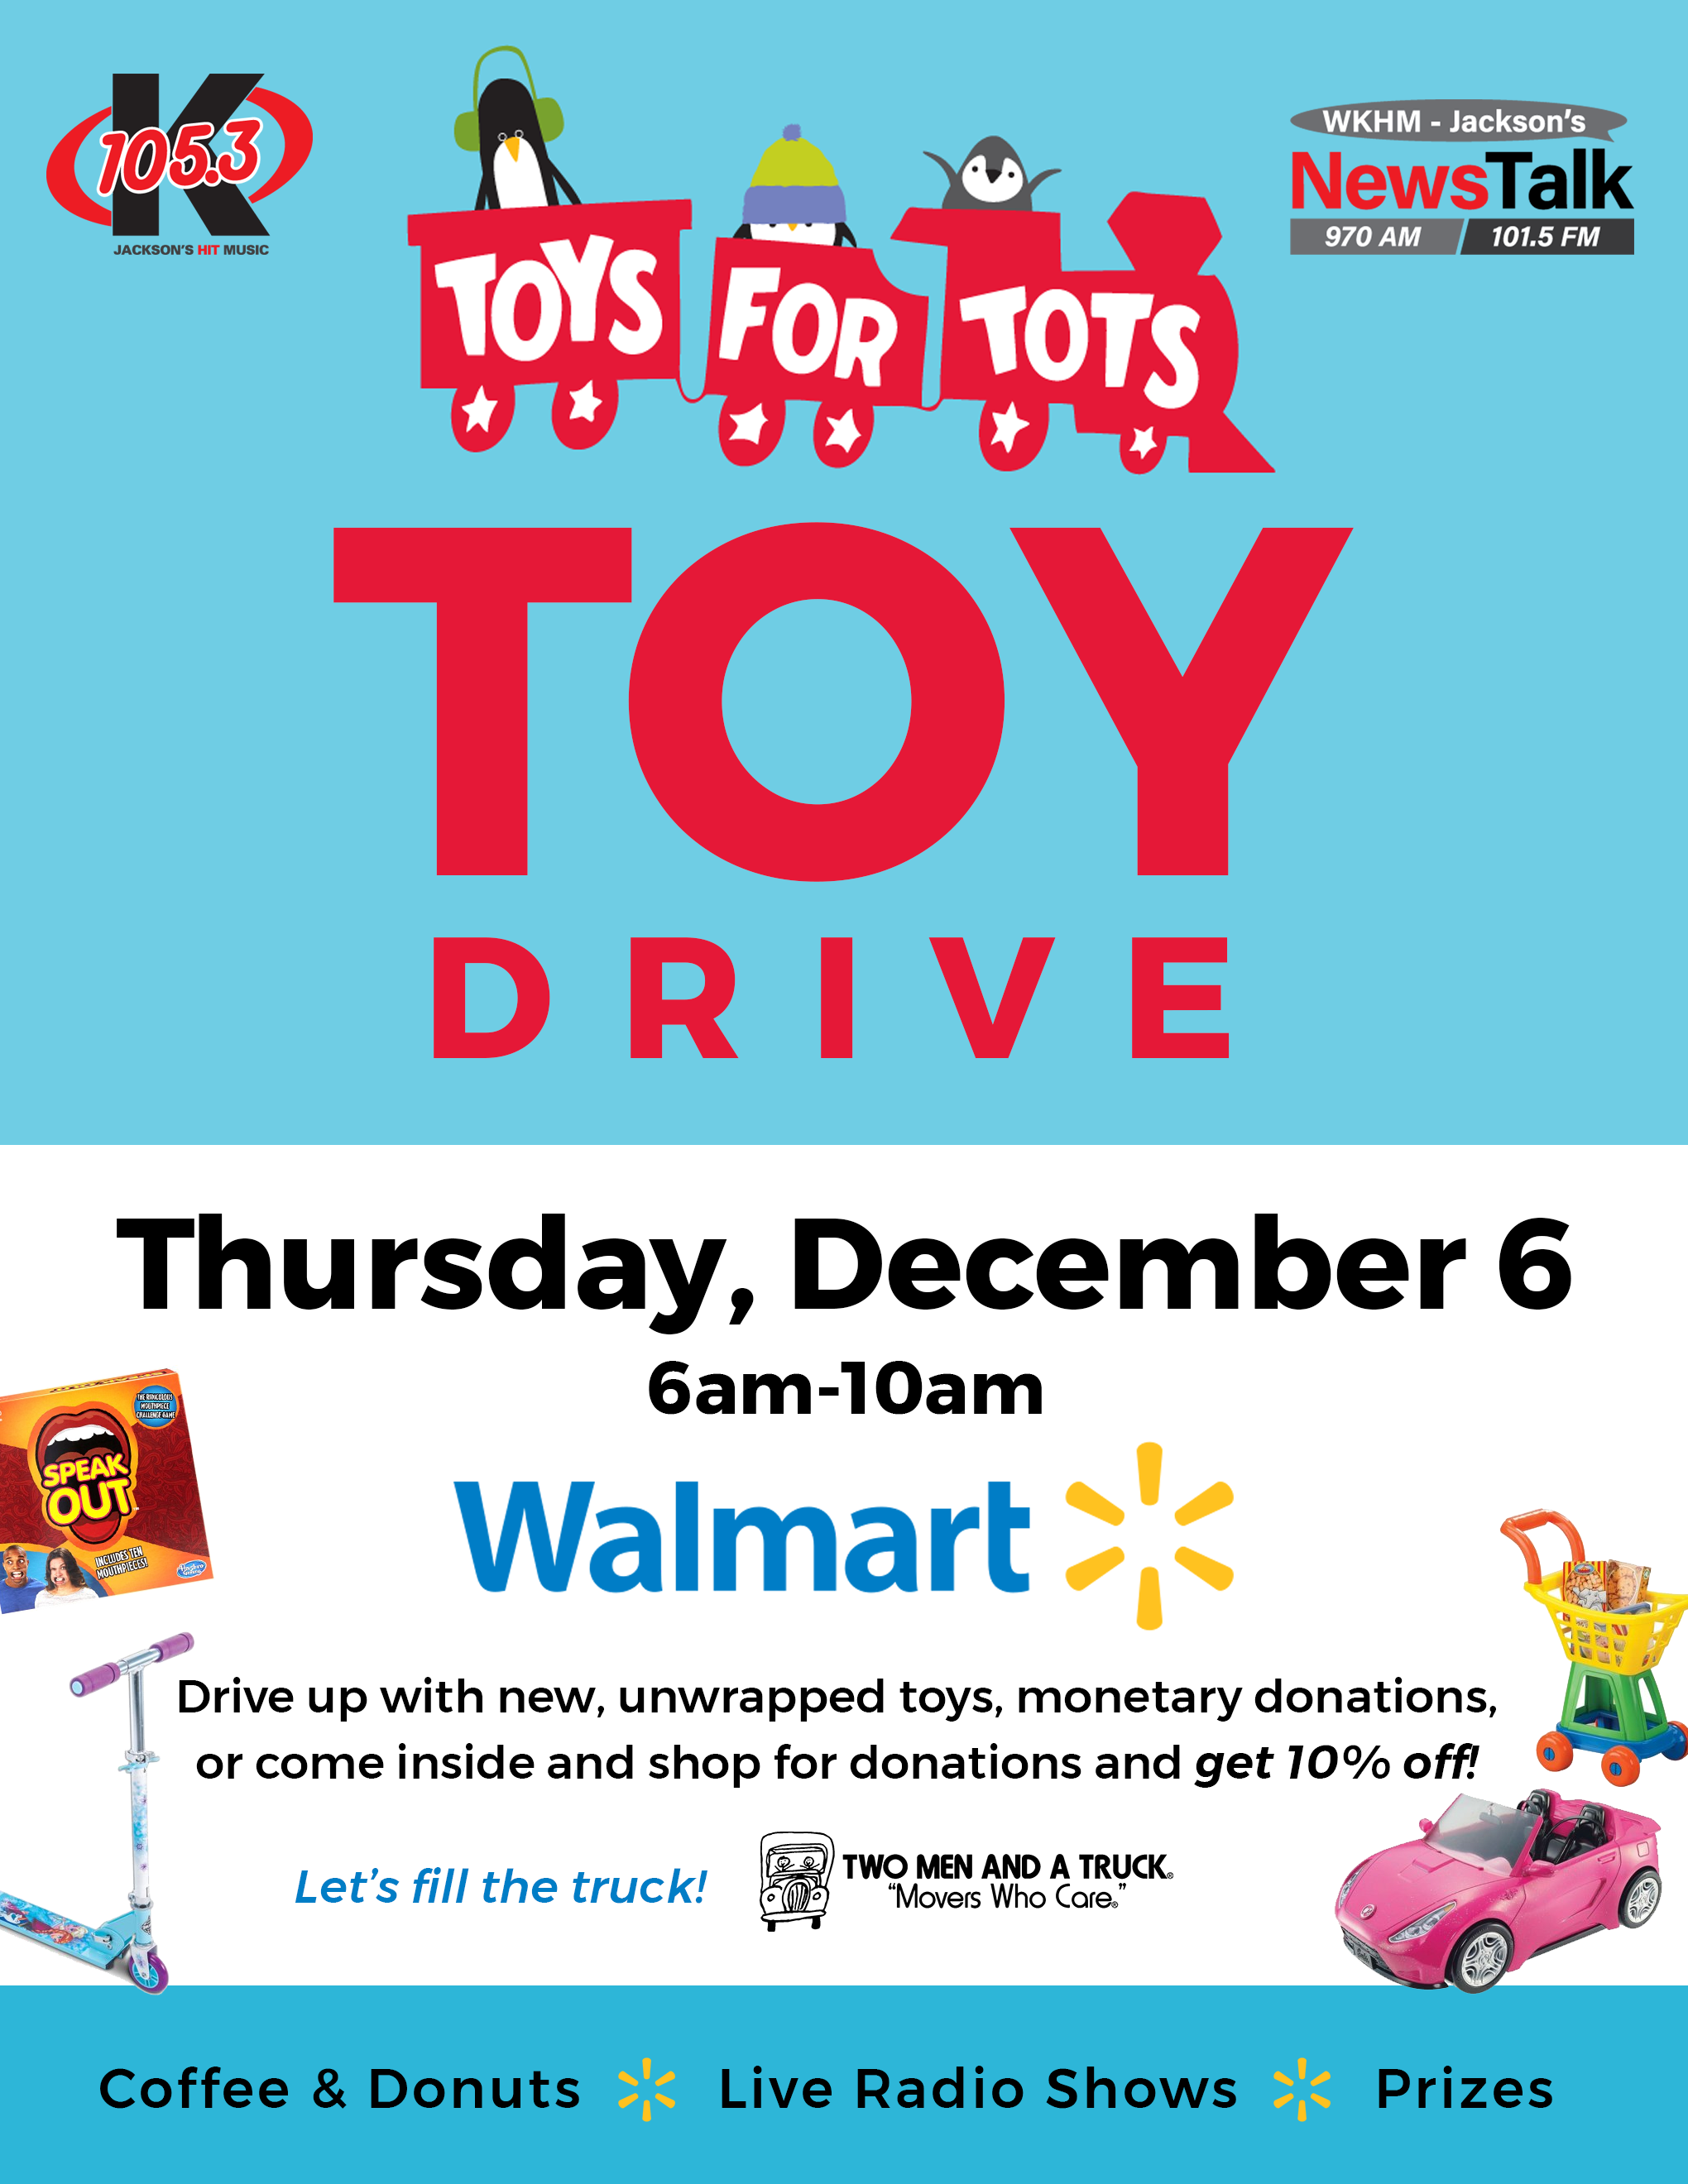 Wkhm Toys For Tots Drive